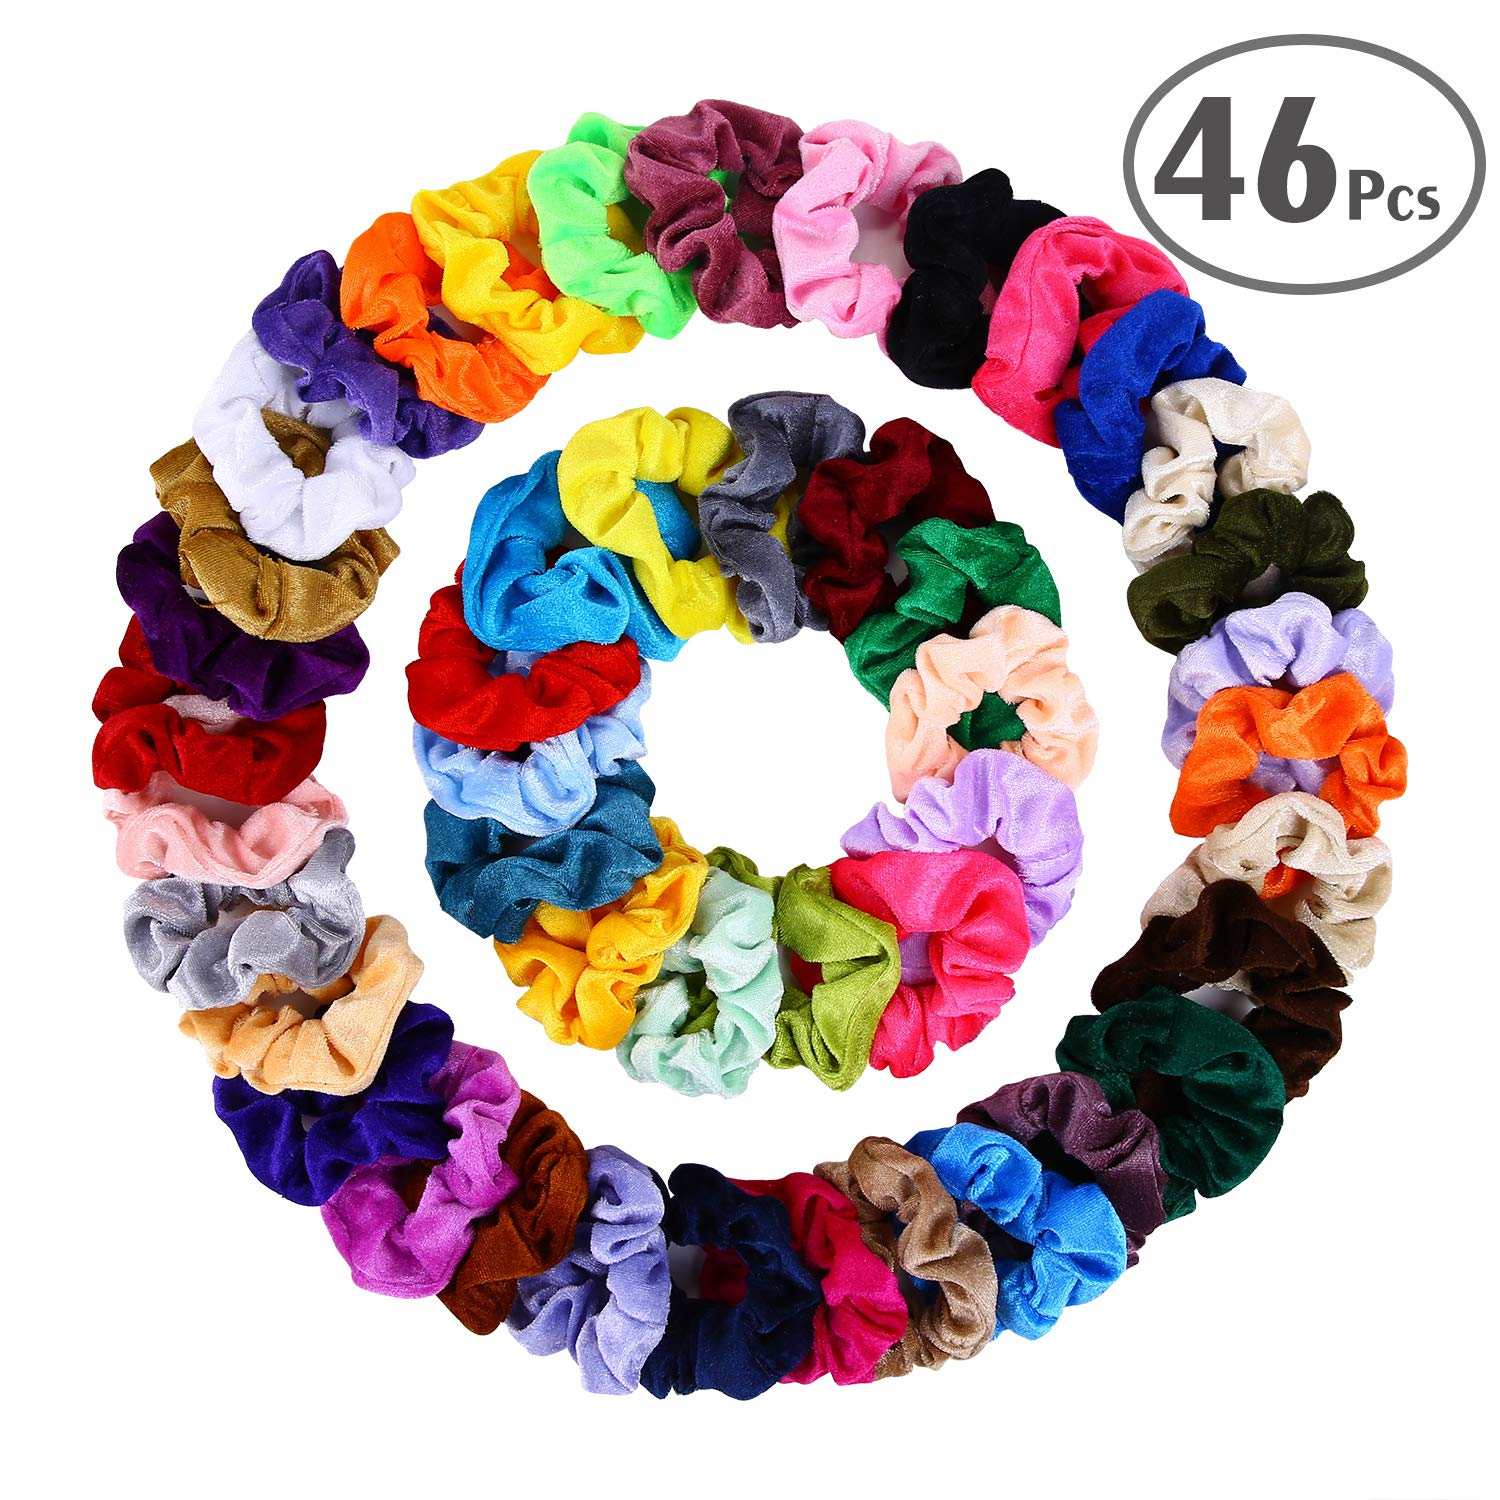 null - Hair Scrunchies Velvet Elastic Hair Bands Scrunchy Hair Ties Ropes Scrunchie for Women or Girls Hair Accessories - 46 Assorted Colors Scrunchies